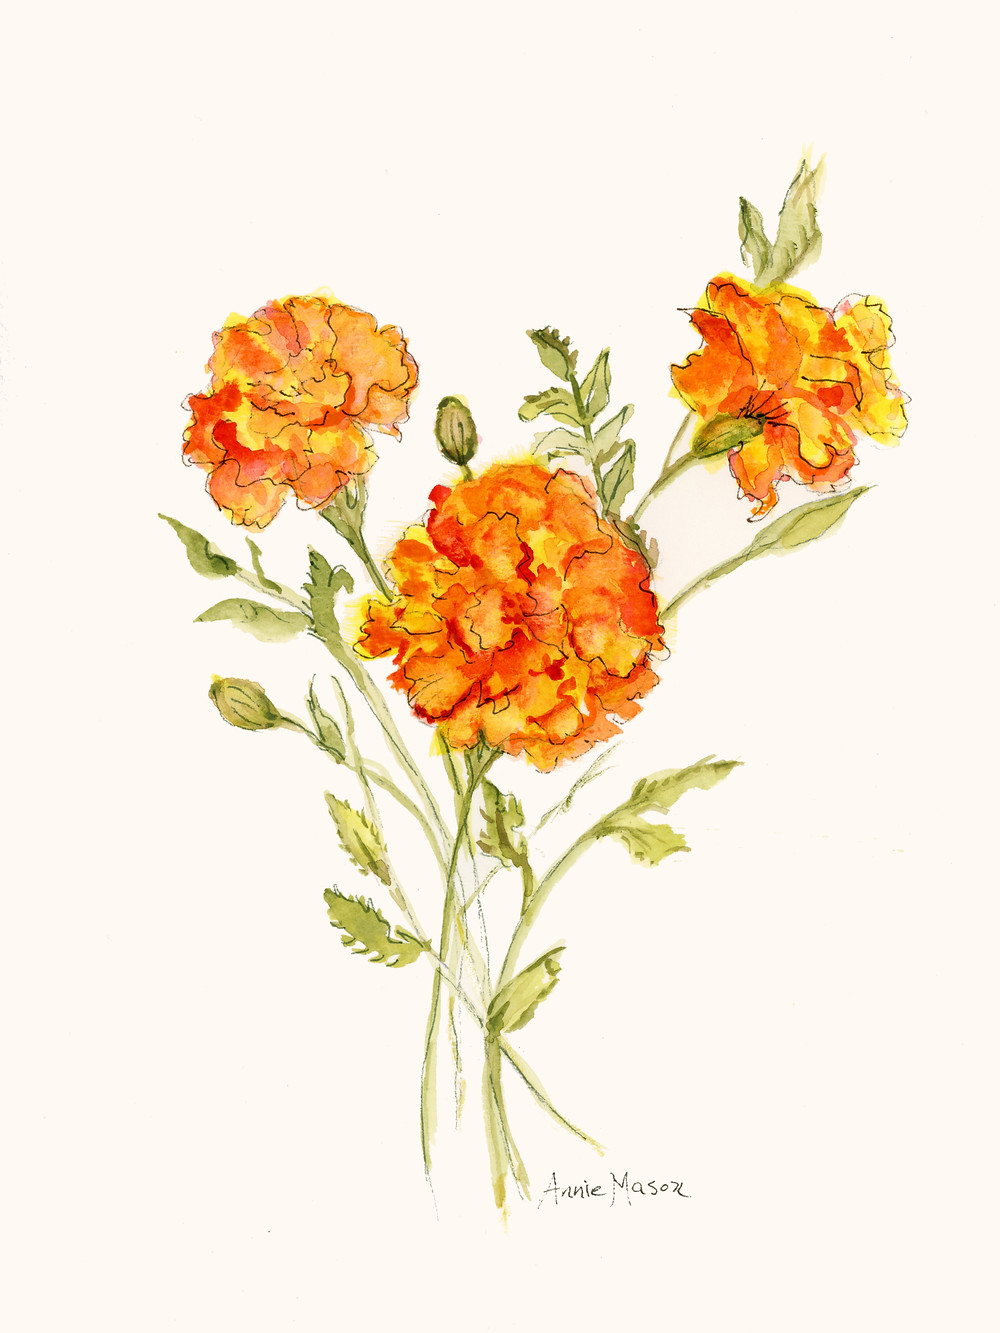 flower marigold yellow orange green leaves petals